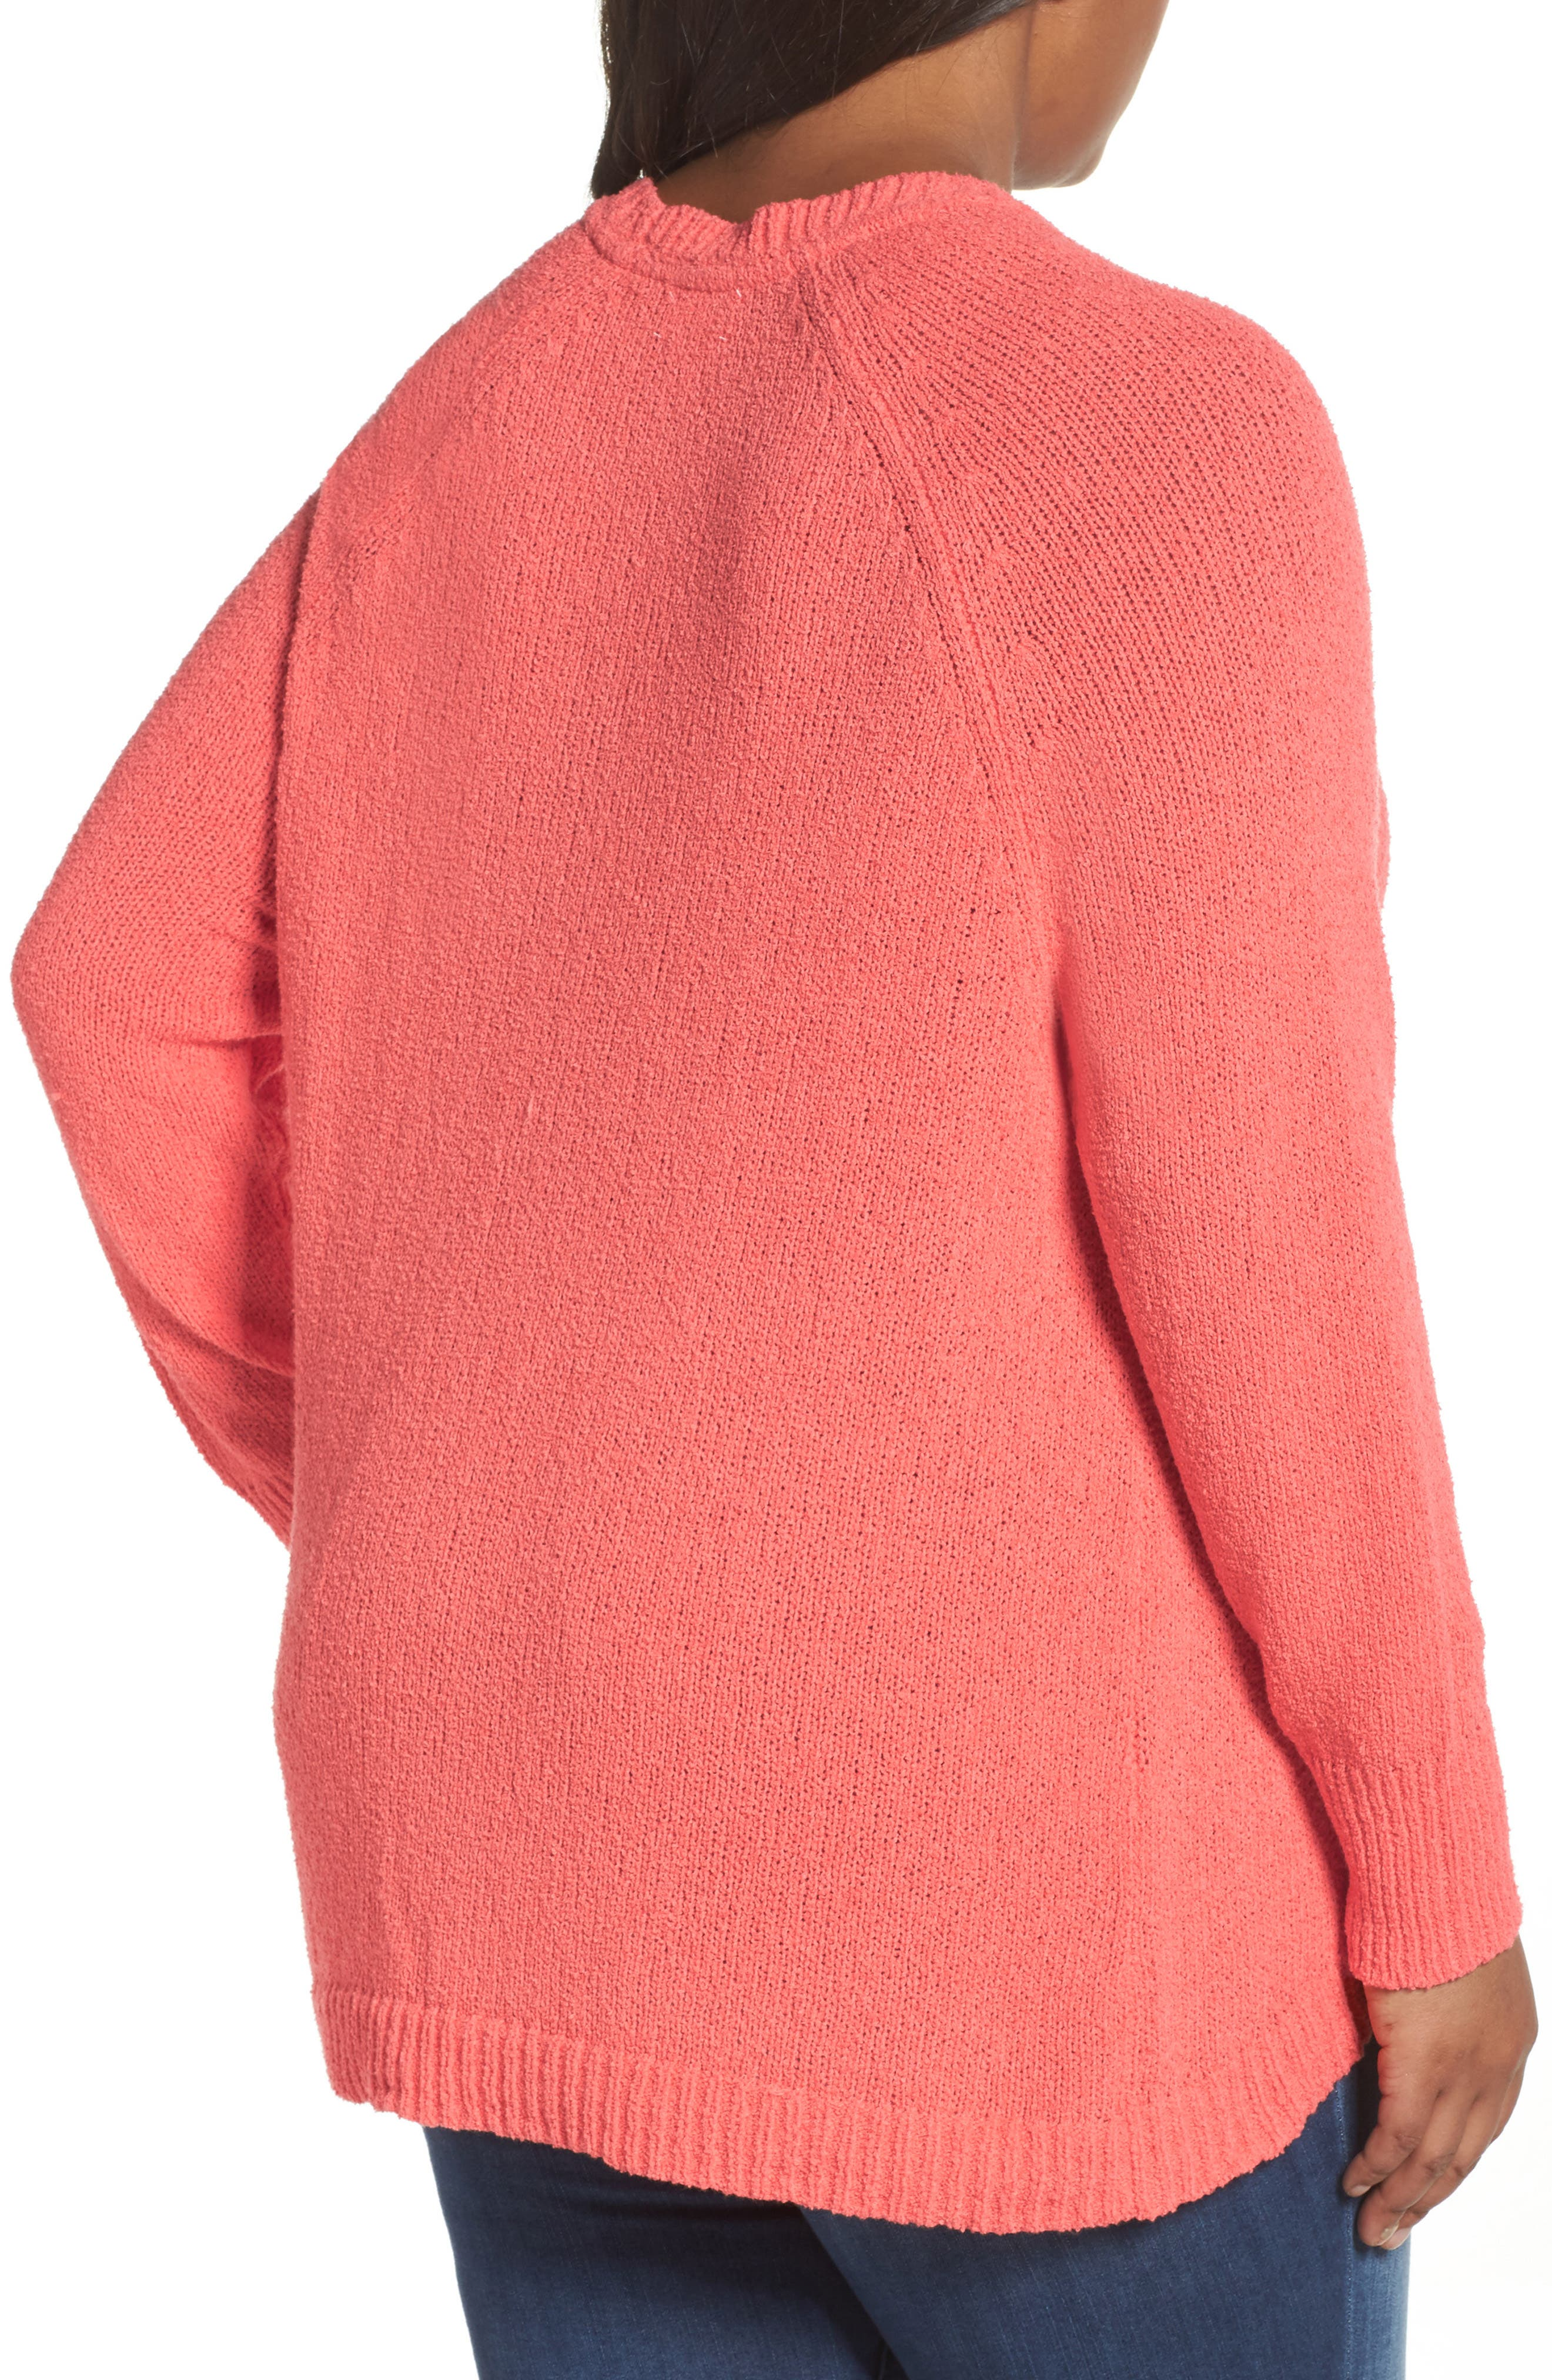 Relaxed Crewneck Sweater,                             Alternate thumbnail 8, color,